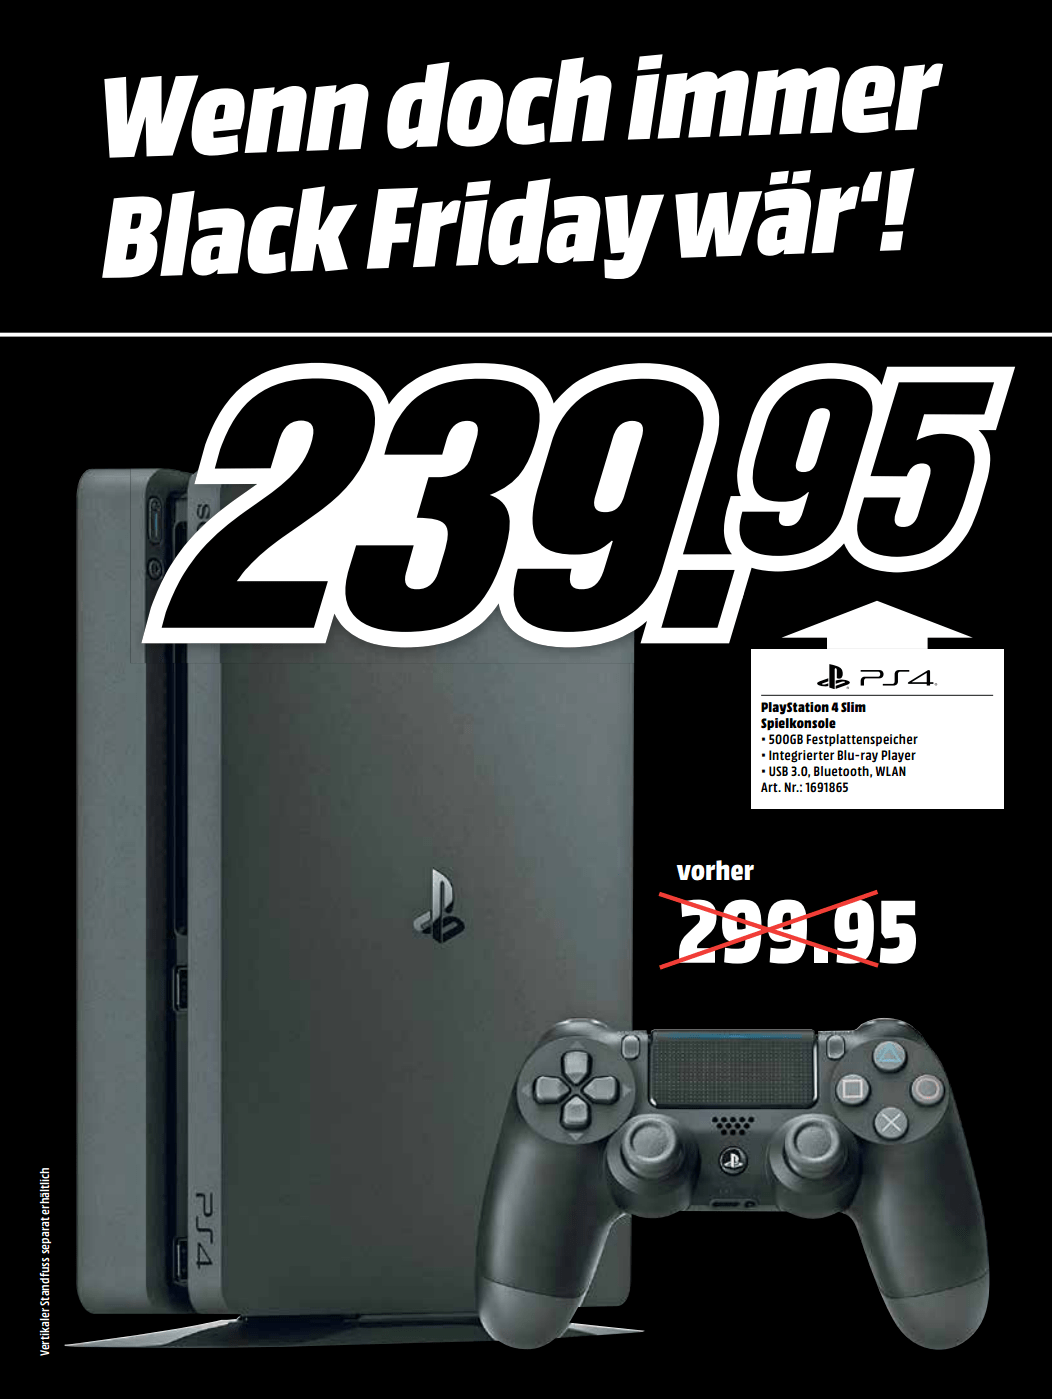 Rabatte Black Friday Mediamarkt Black Friday 2019 Alle Deals Alle Infos Bis Zu 50